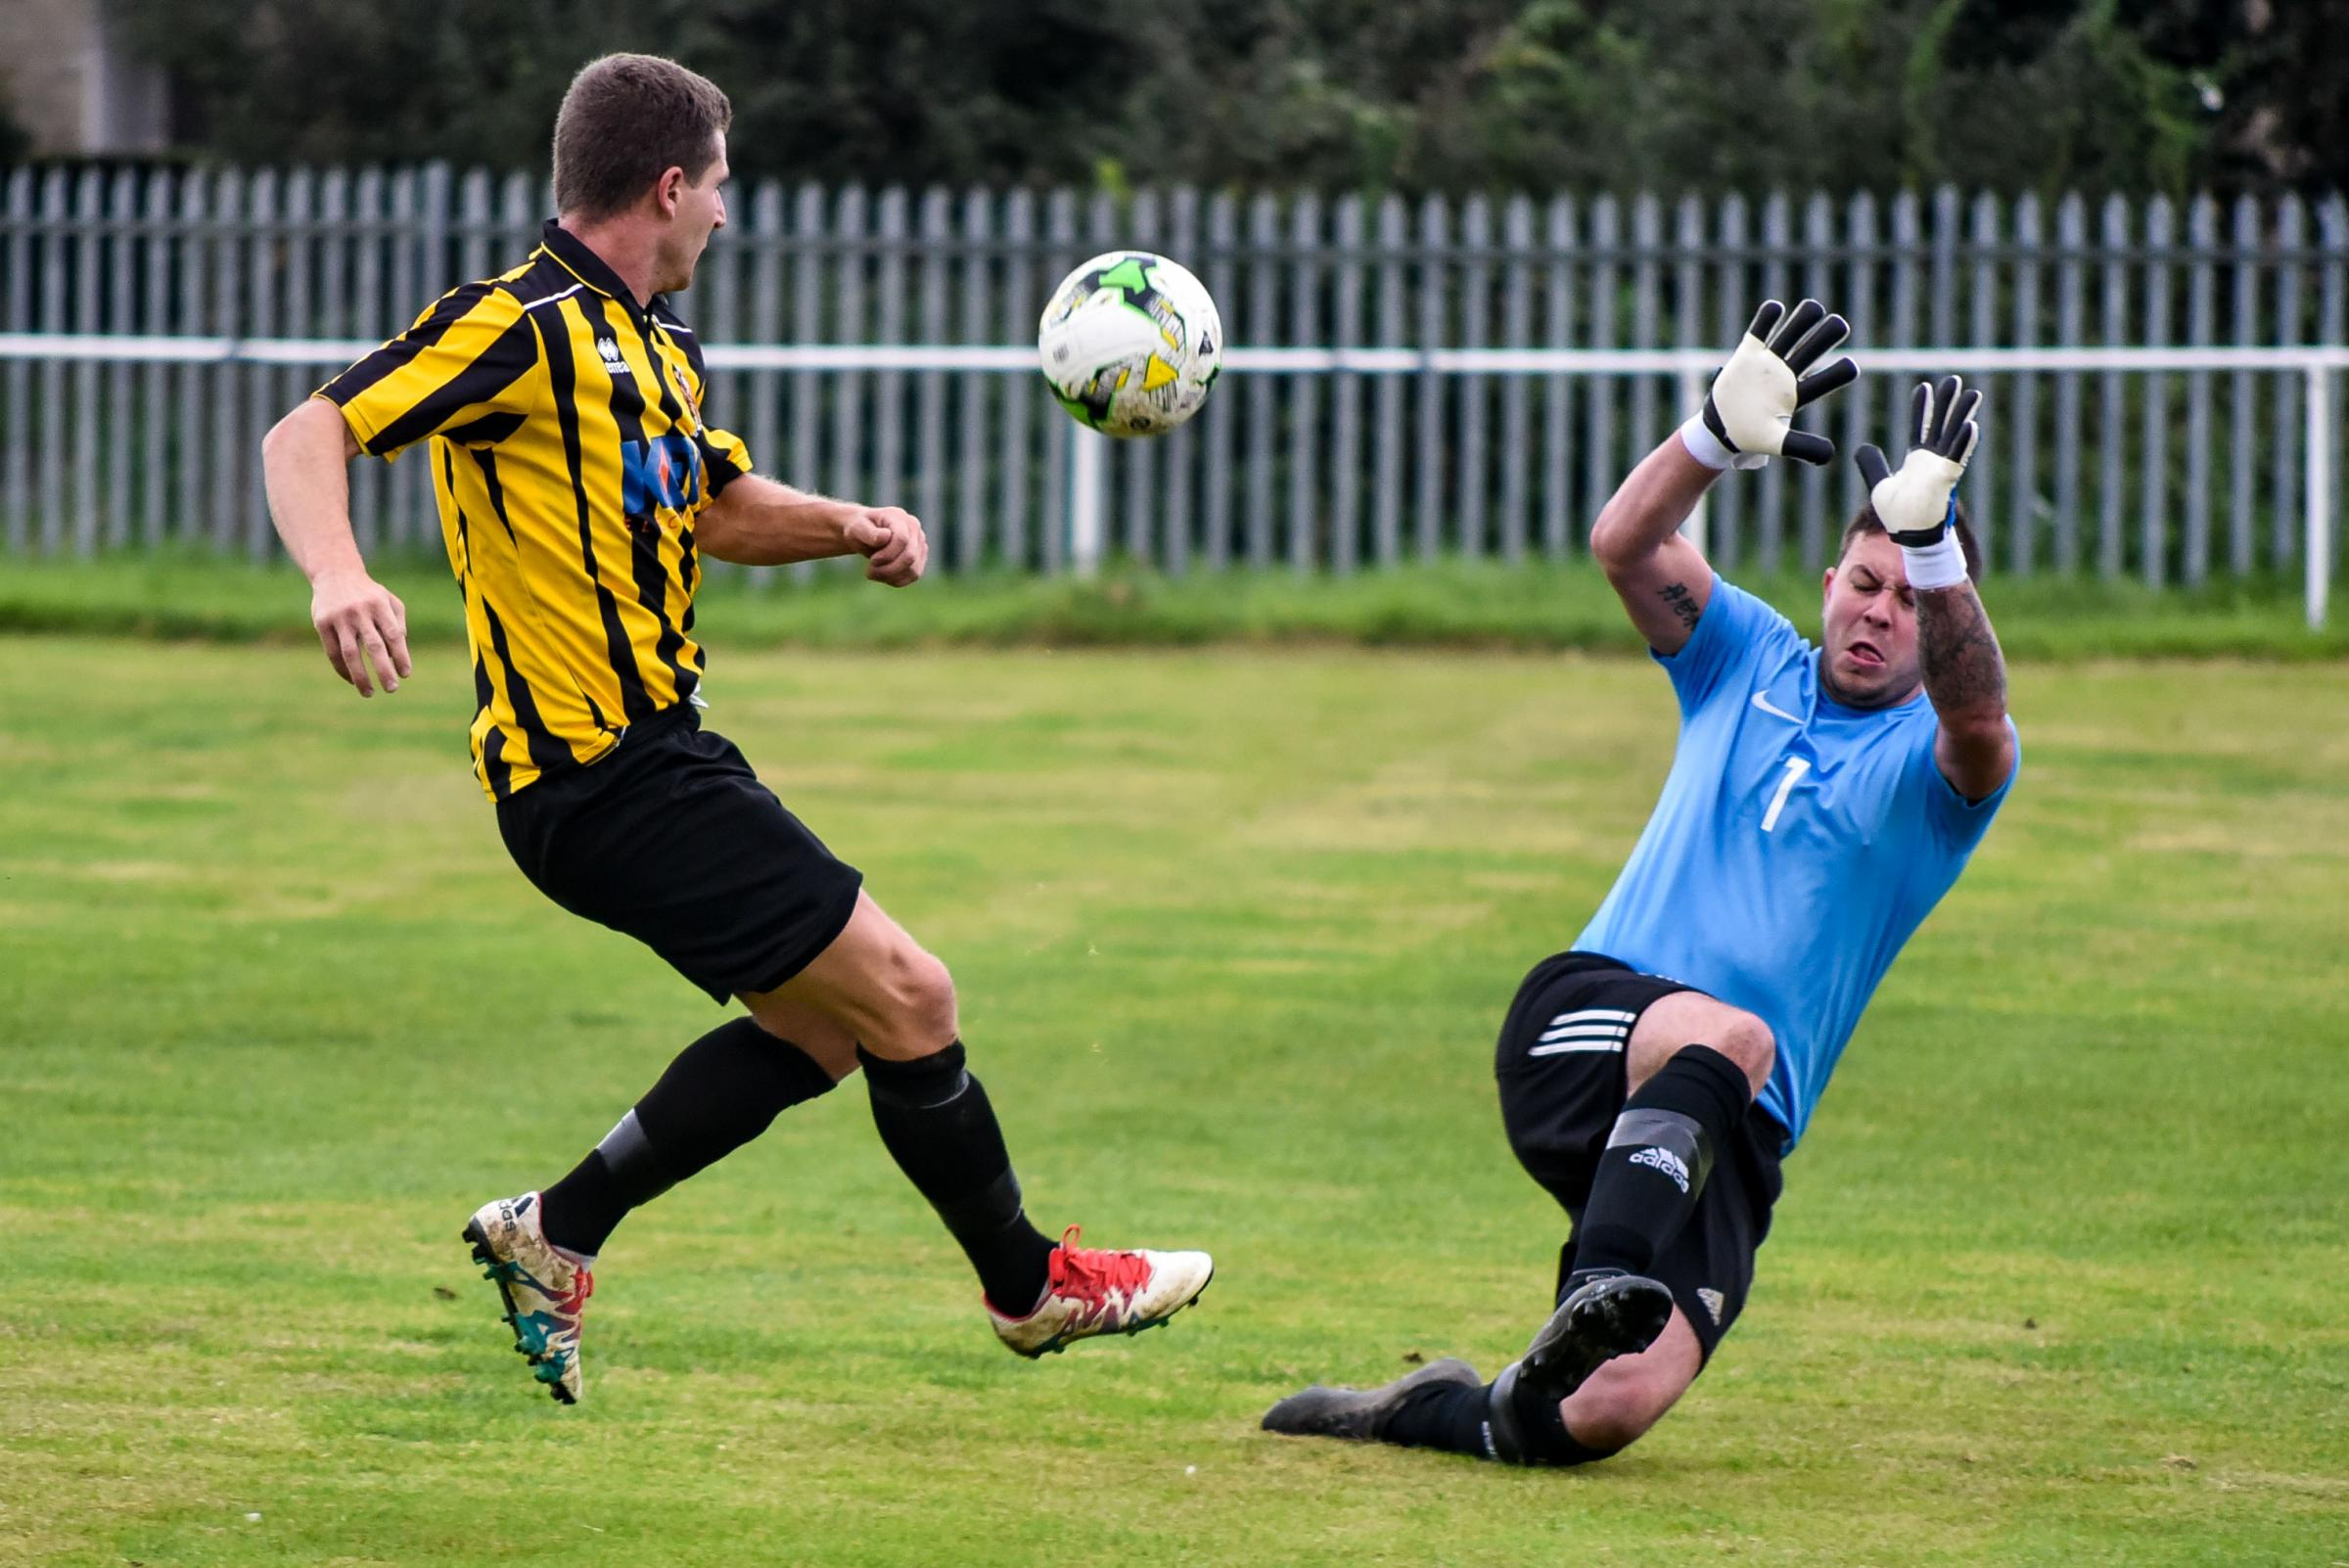 Trowbridge's Millard chips over the keeper to equalise during Saturday's county cup tie